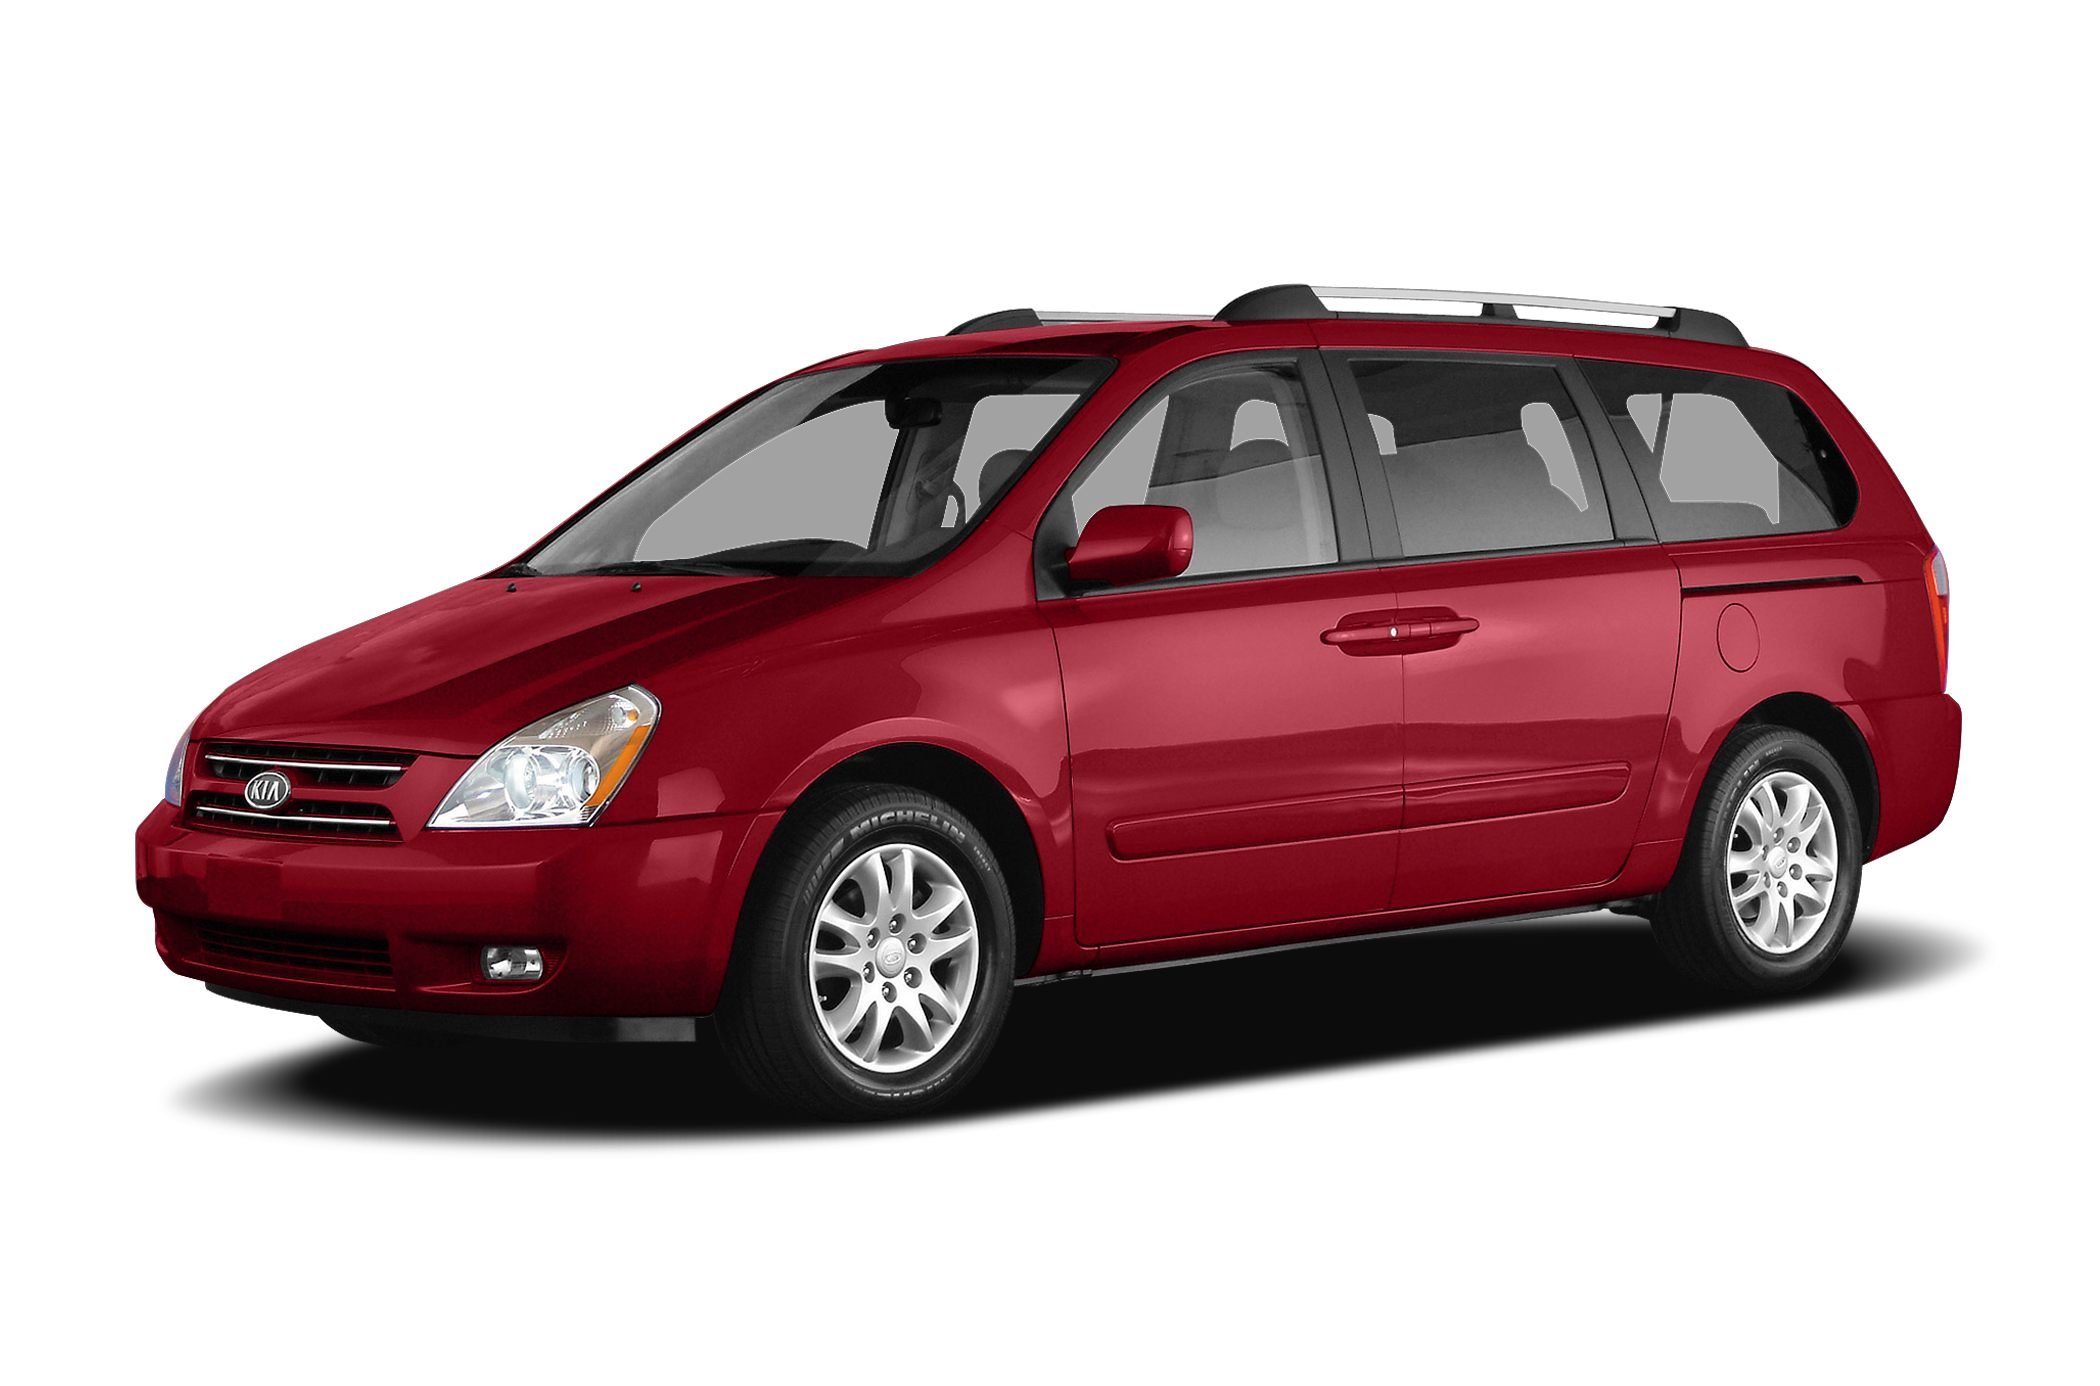 2006 Kia Sedona LX For additional information on this vehicle pleasecontact Teresa in the Internet